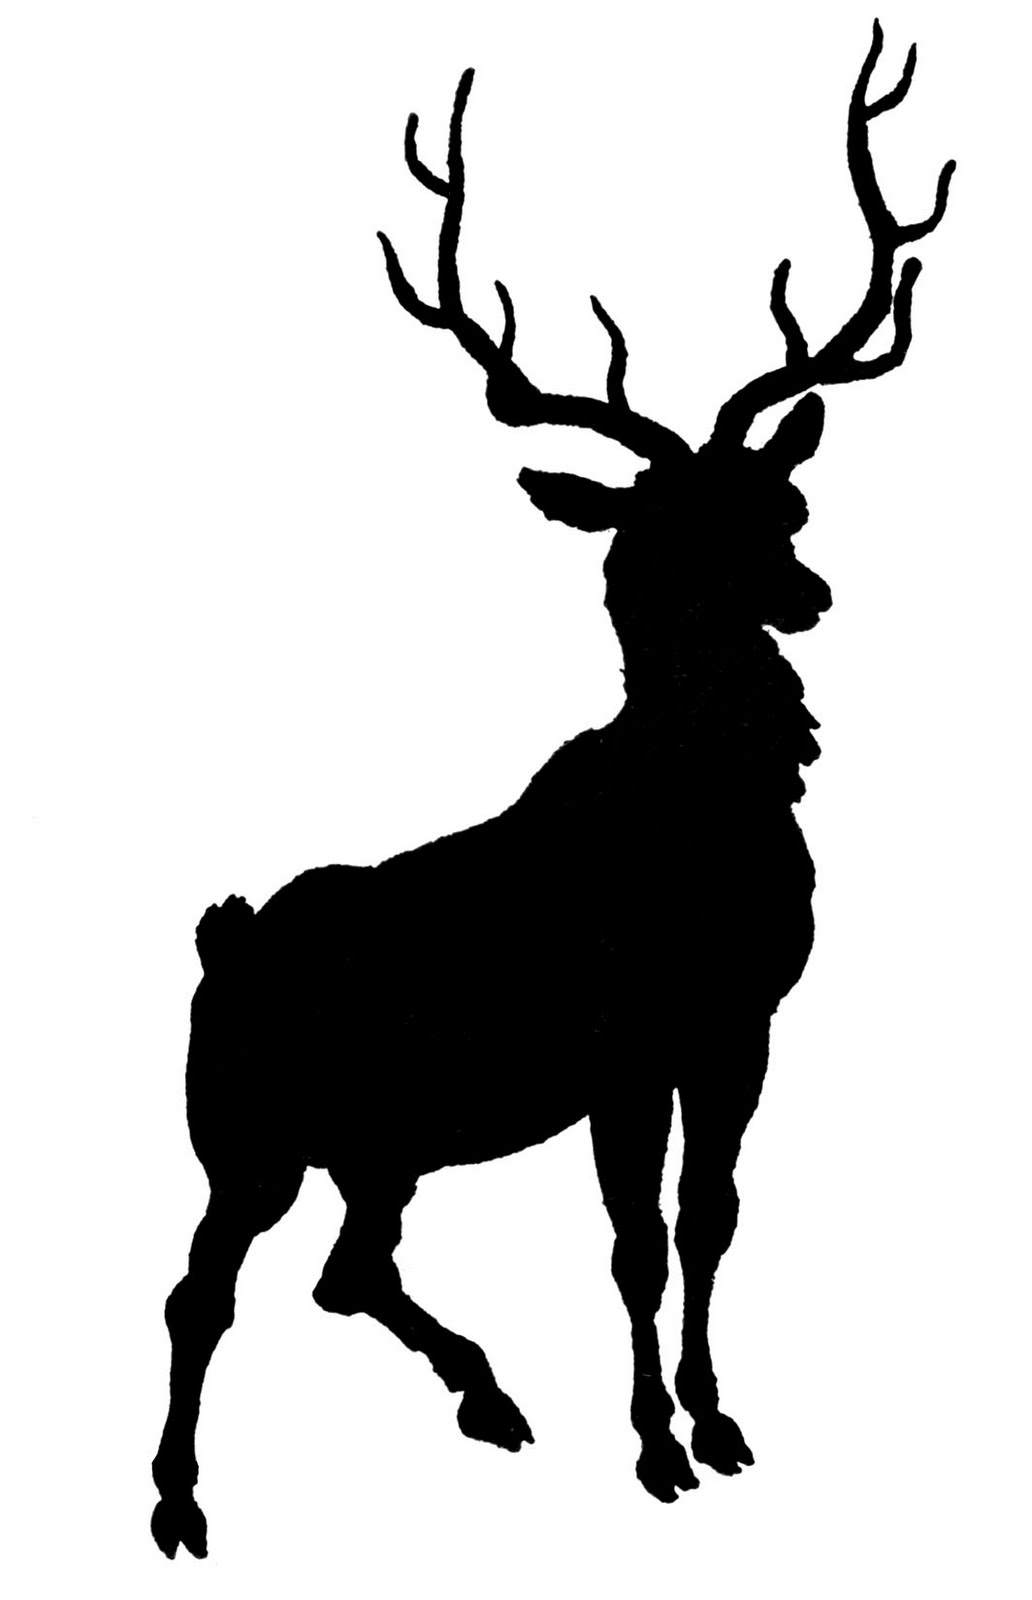 1032x1600 Vintage Clip Art Deer With Antlers Silhouette The Graphics Fairy